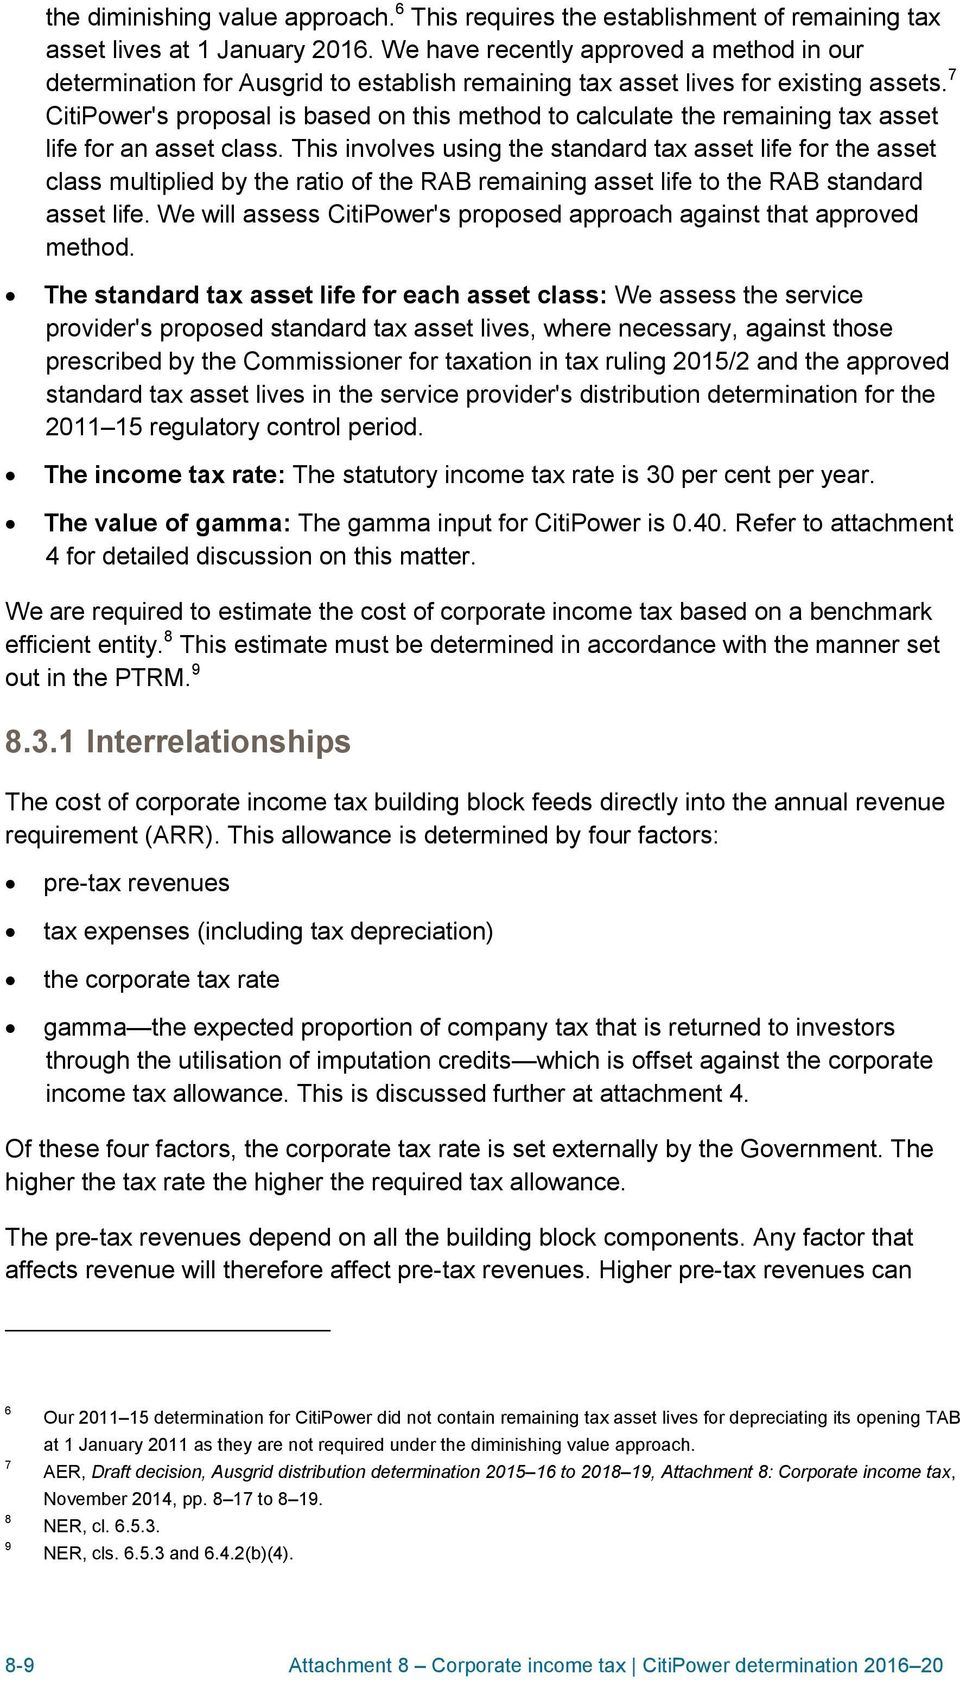 7 CitiPower's proposal is based on this method to calculate the remaining tax asset life for an asset class.